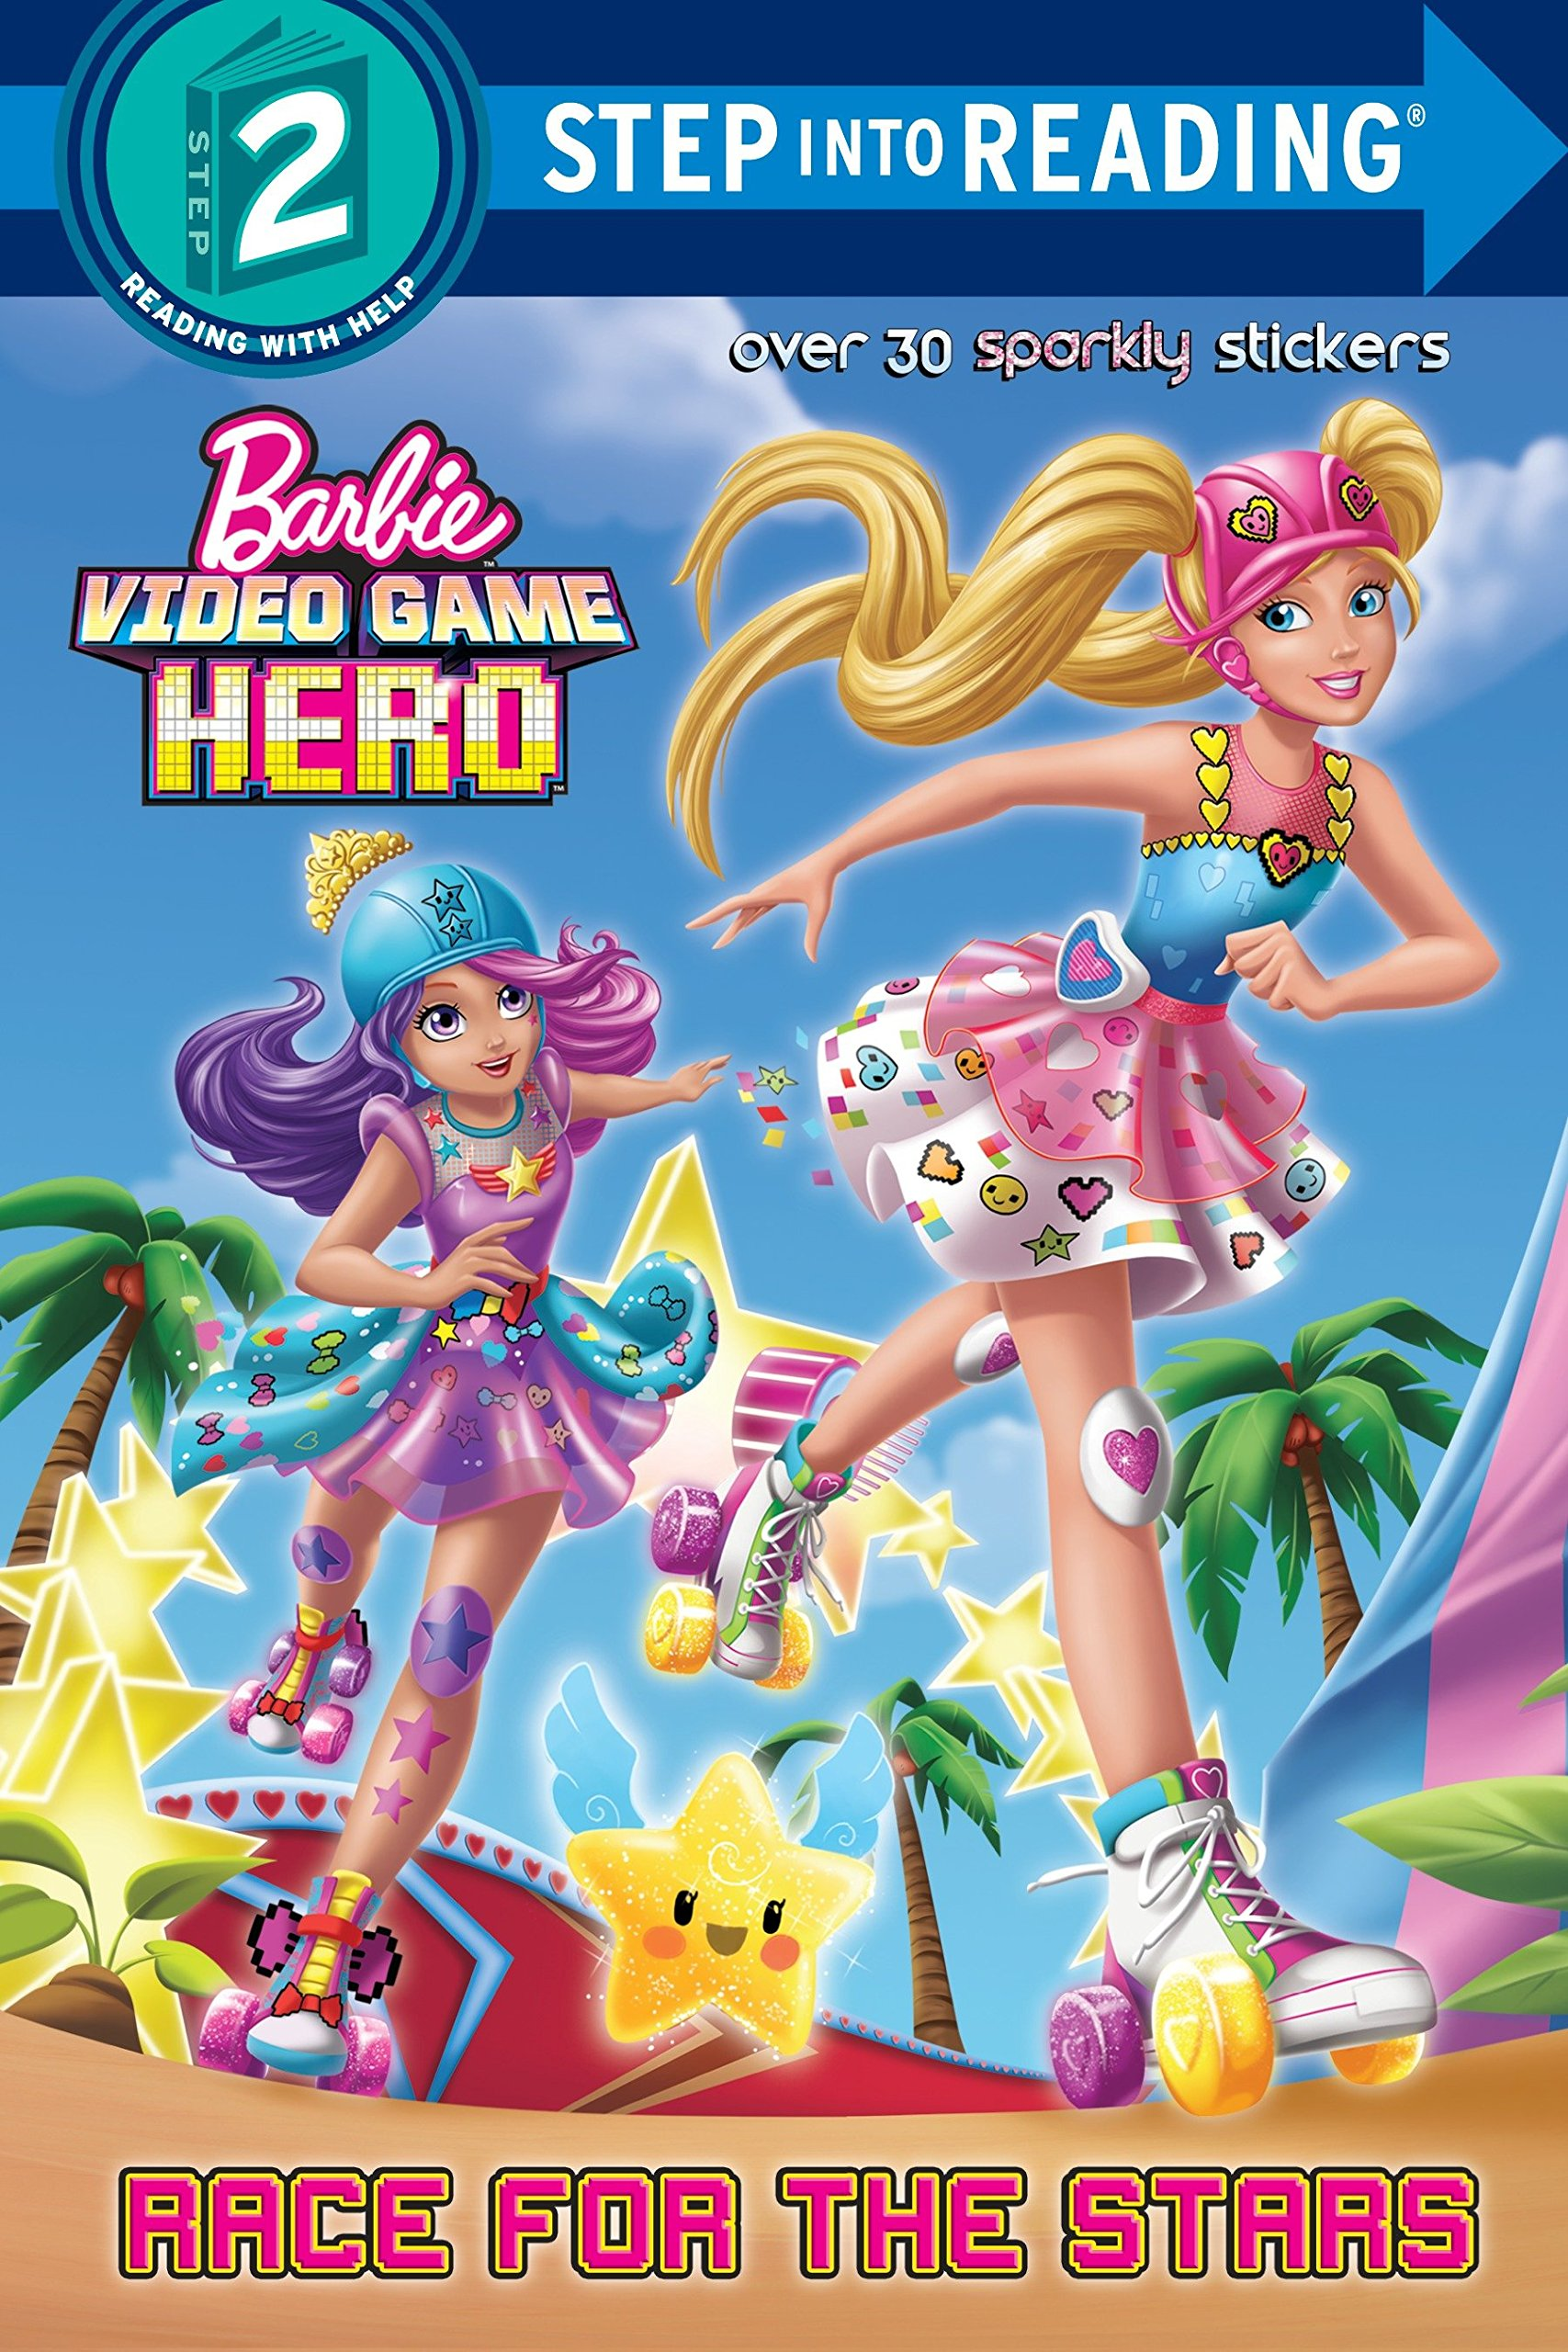 Download Race for the Stars (Barbie Video Game Hero) (Step into Reading) ebook